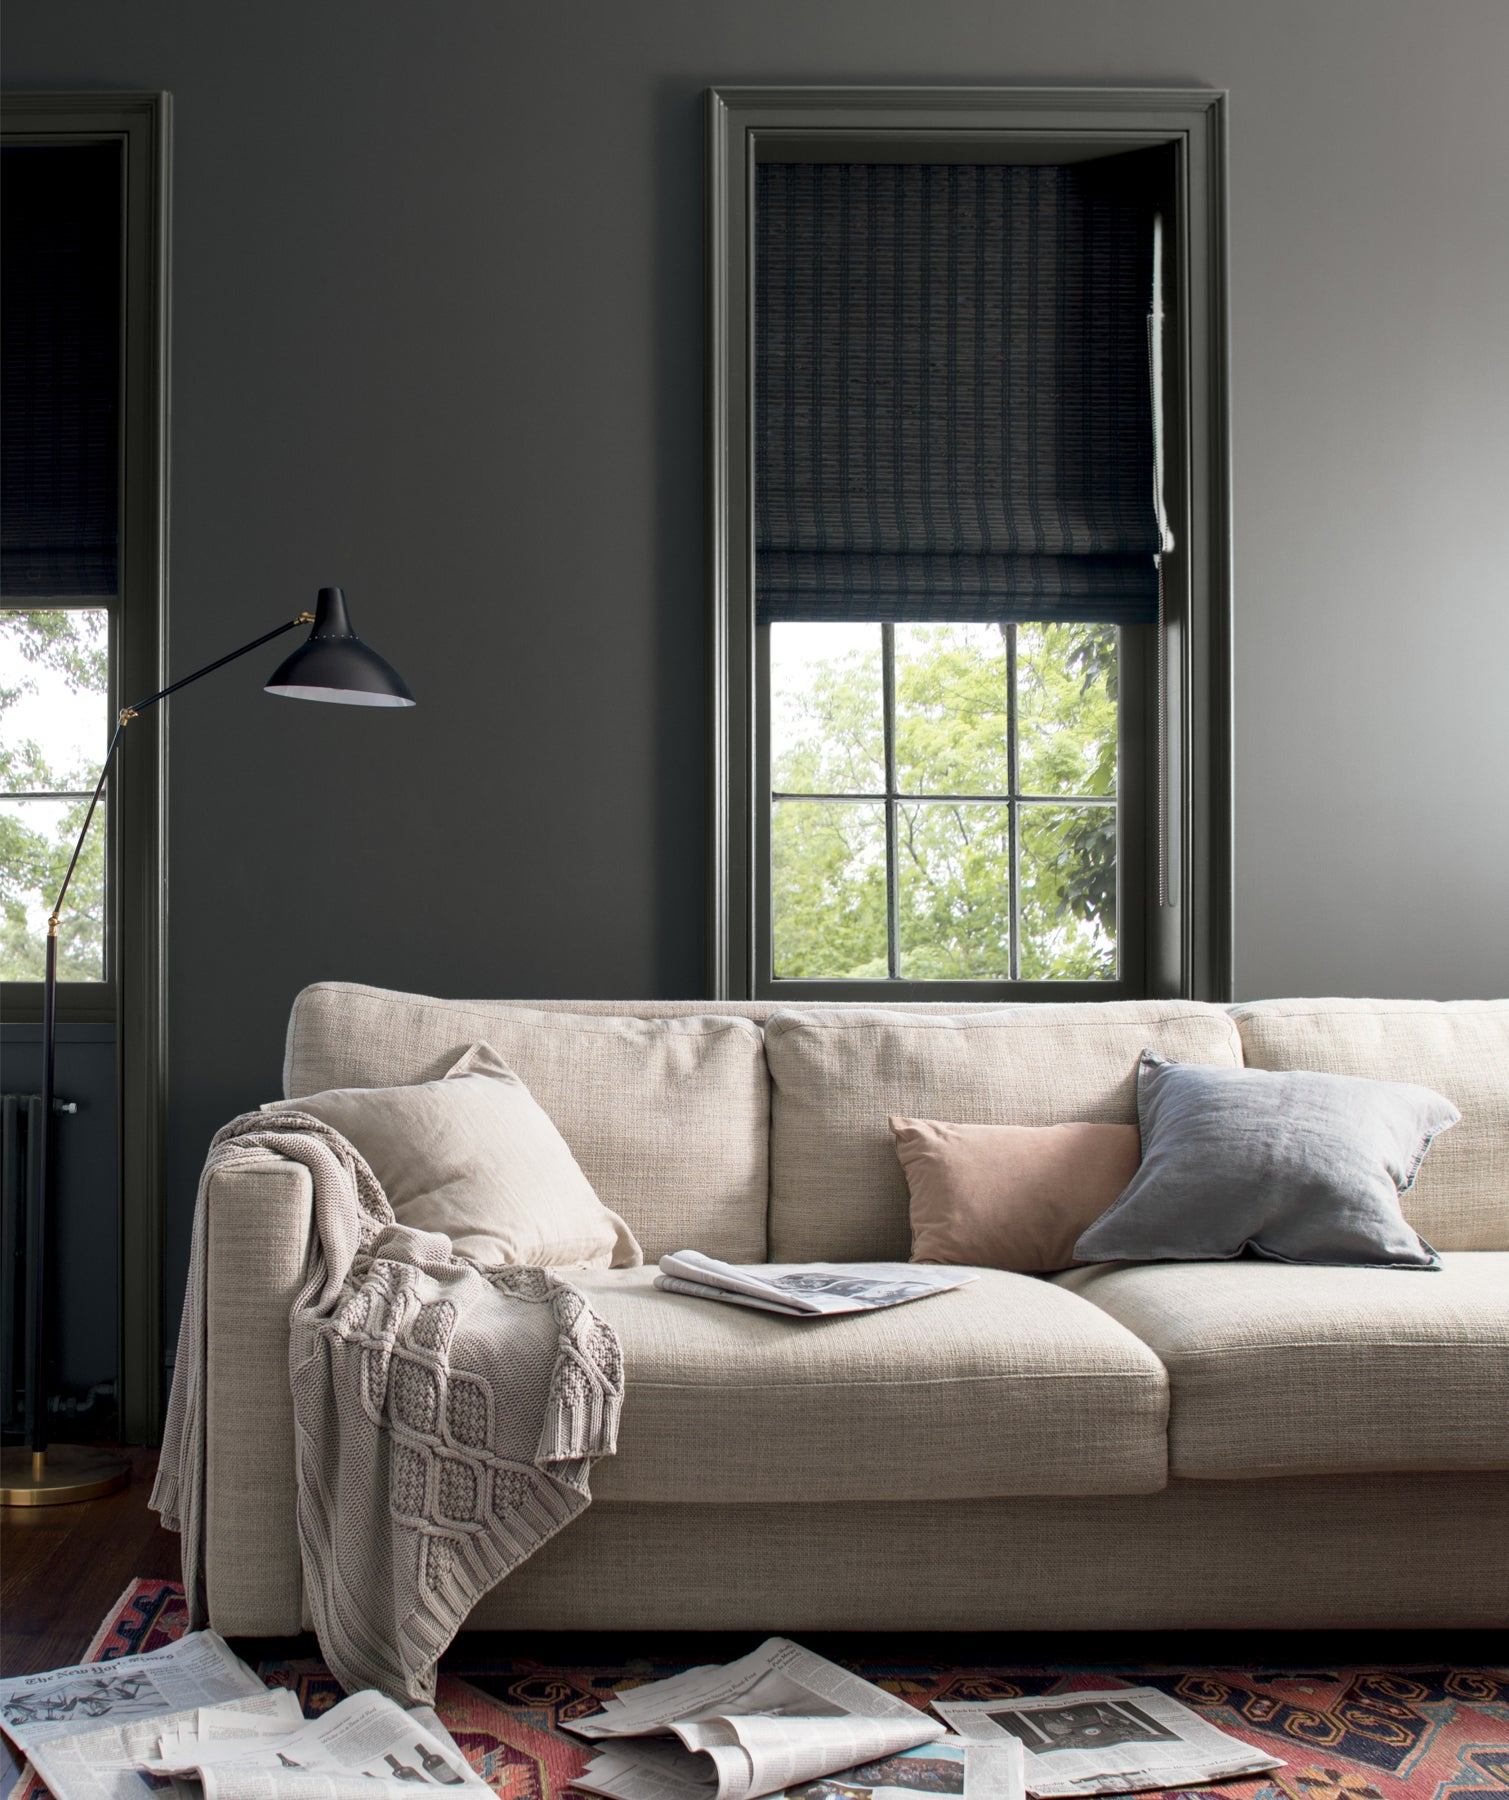 benjamin moore color of the year 2019 announcement. Black Bedroom Furniture Sets. Home Design Ideas